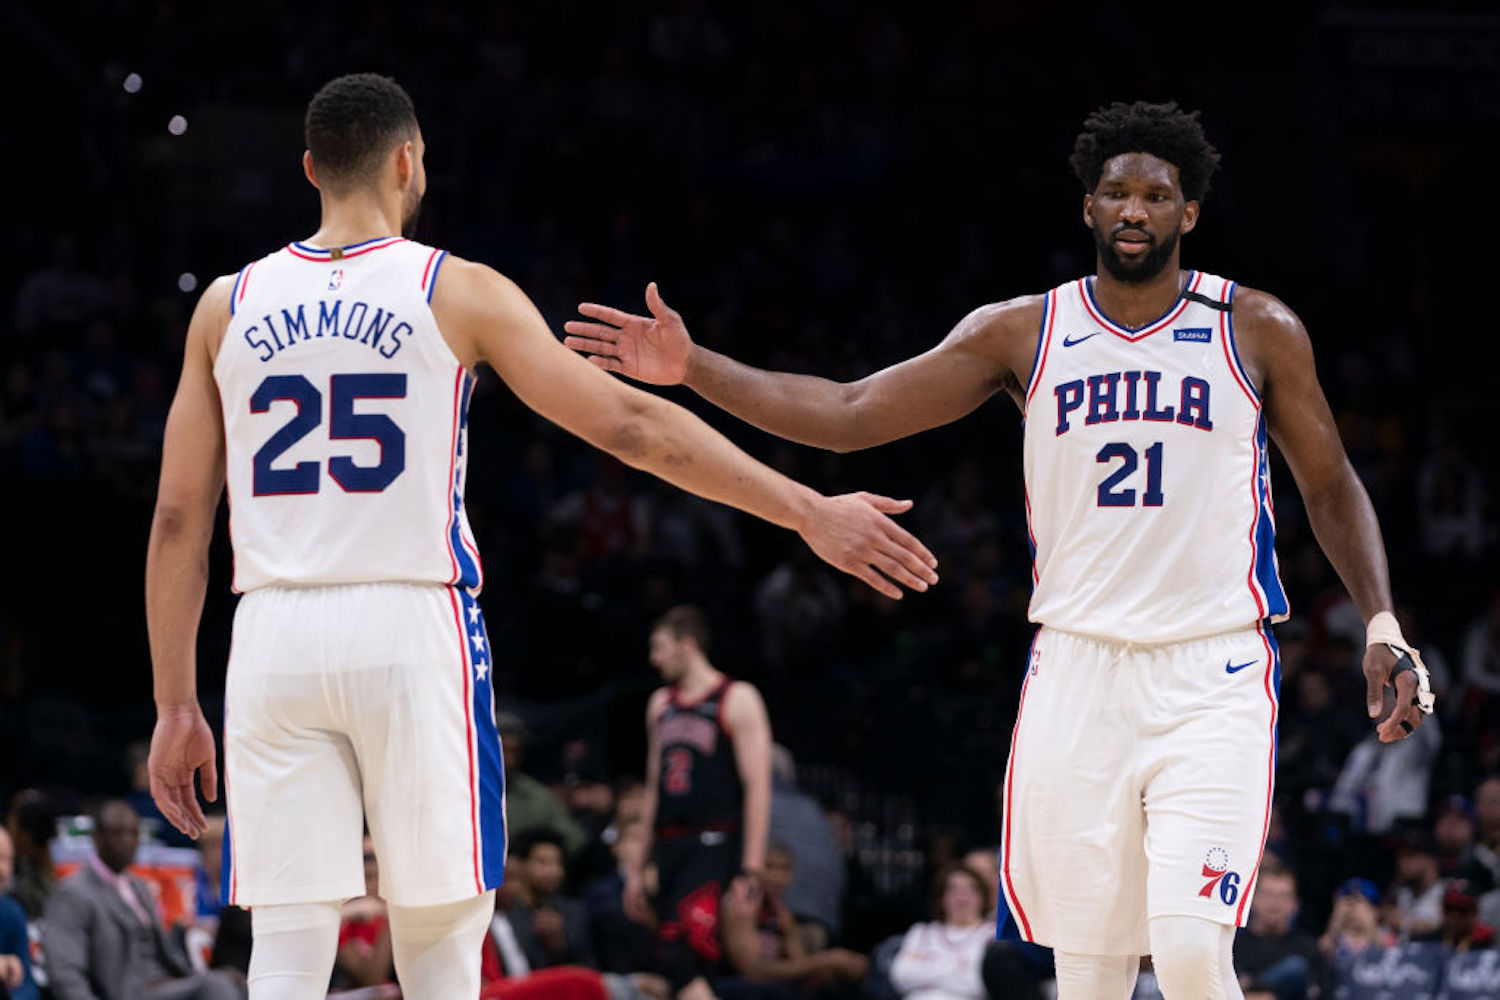 Ben Simmons is most likely out for the season with another injury. Have we seen the last of Simmons and Joel Embiid in Philadelphia?